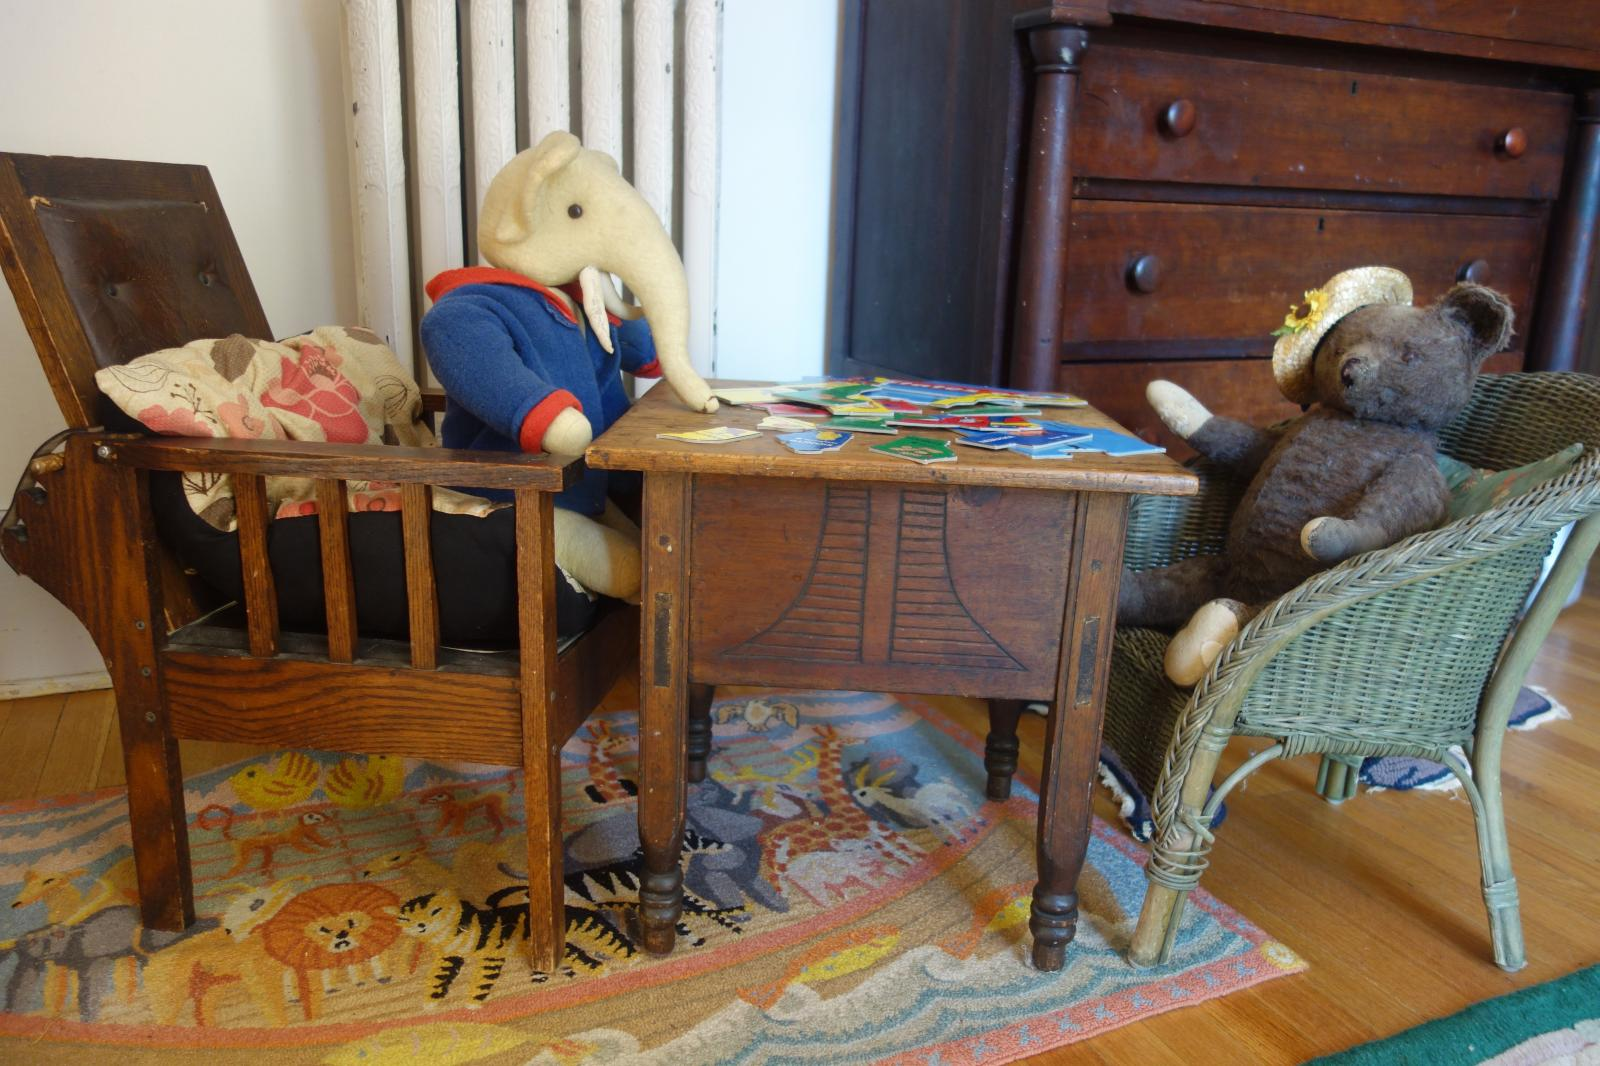 Elephant and Bear at work on a puzzle